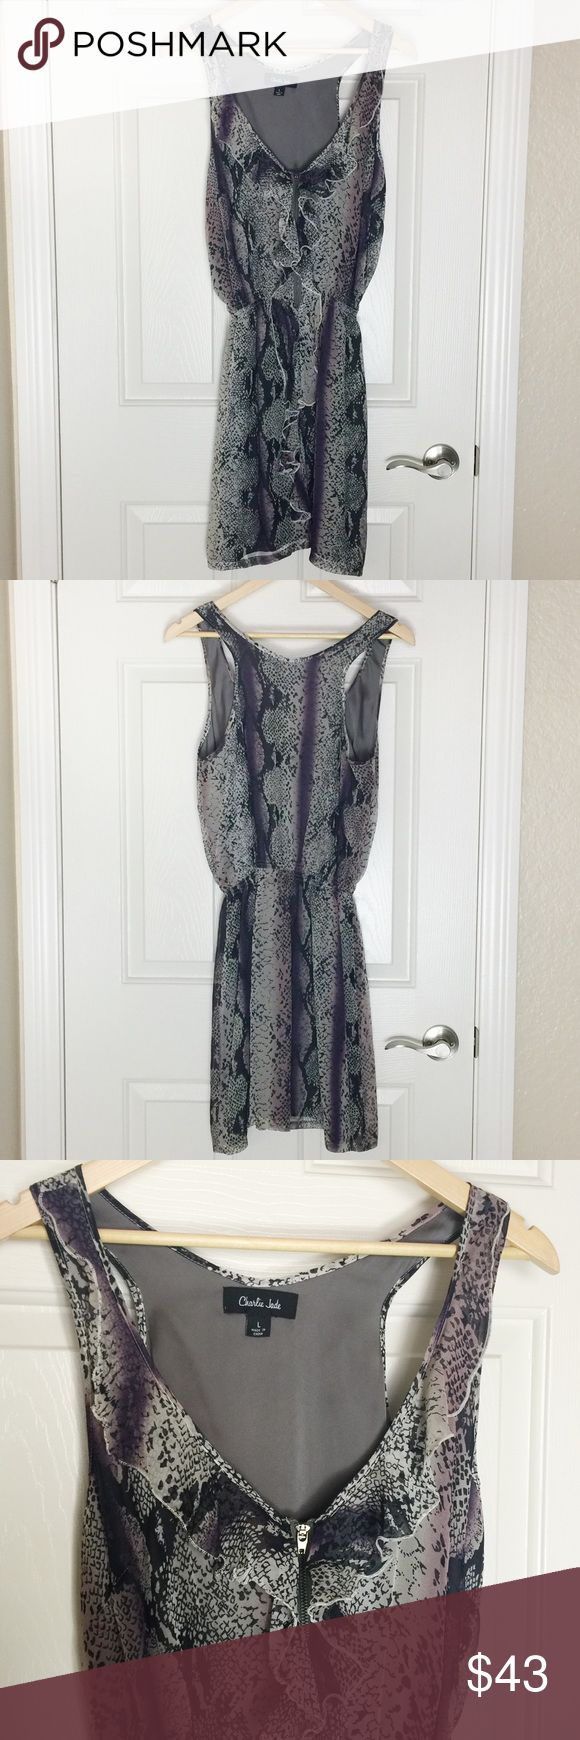 Charlie Jade Silk Racerback Dress Black, grey, and purple racerback dress with zipper and ruffle detail in front. Fully lined. Reptile print. EUC Charlie Jade Dresses